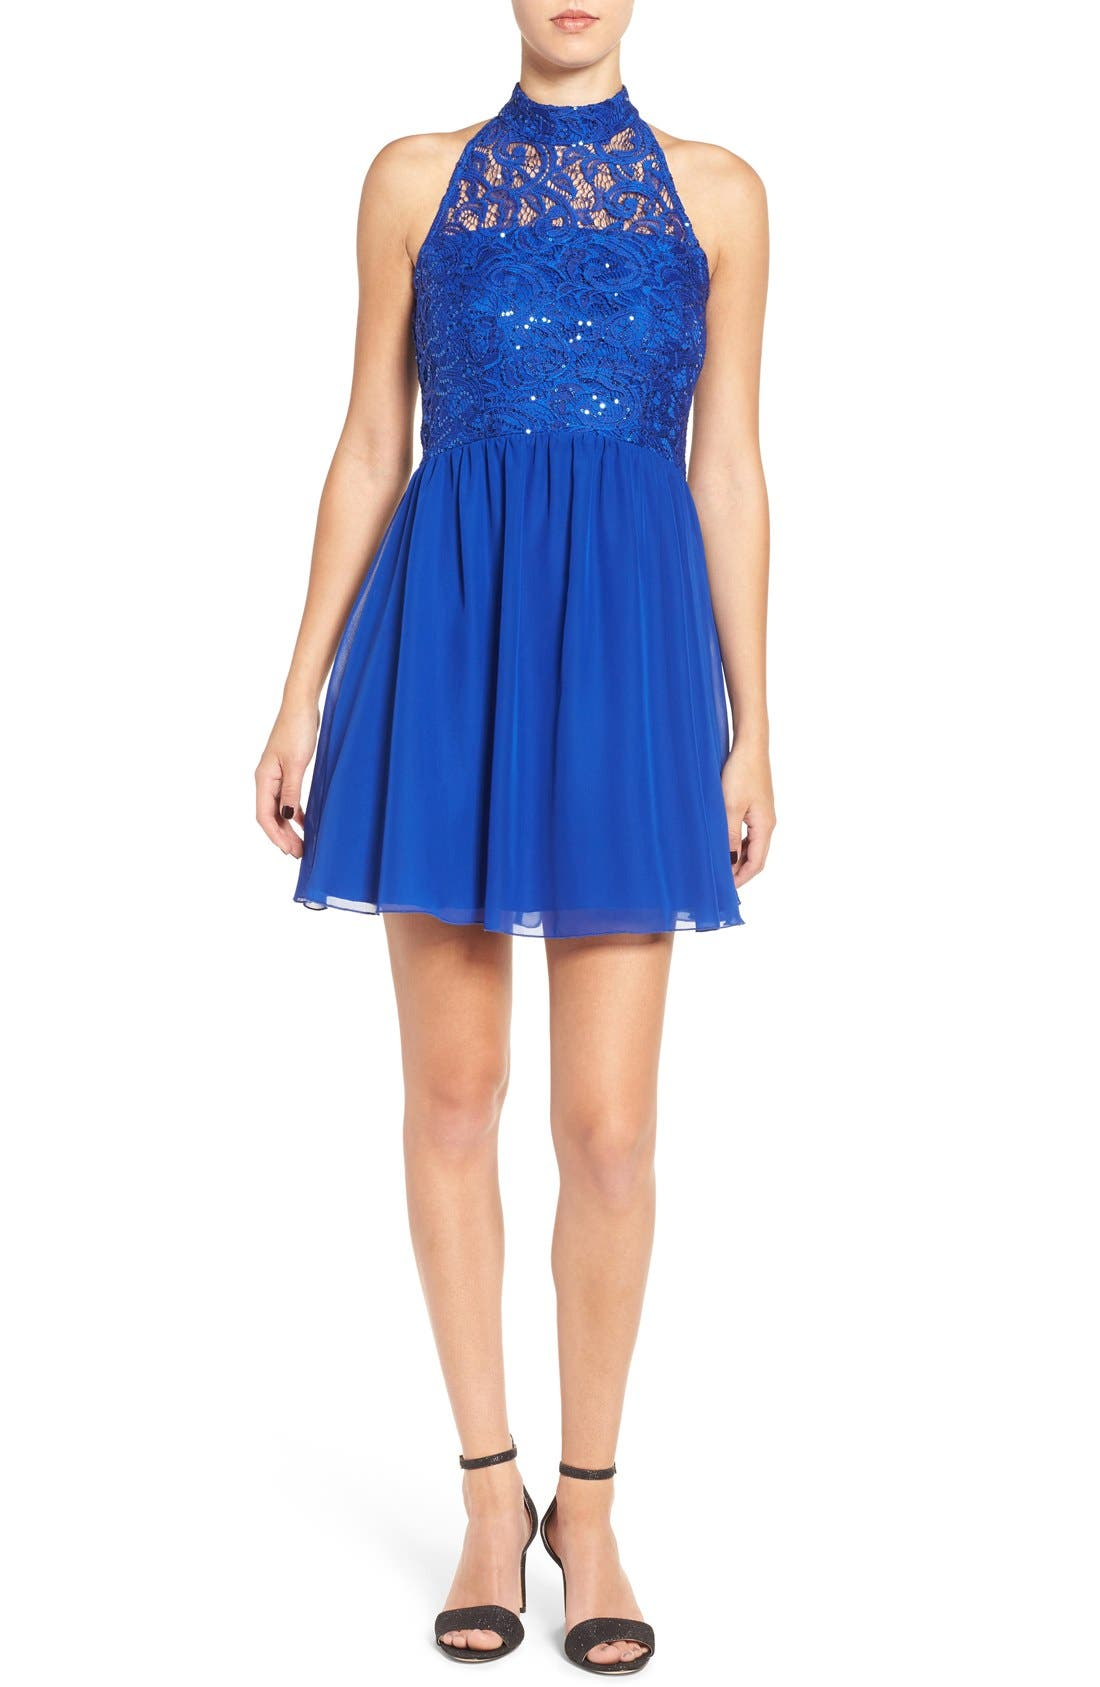 Speechless Lace Halter Party Dress